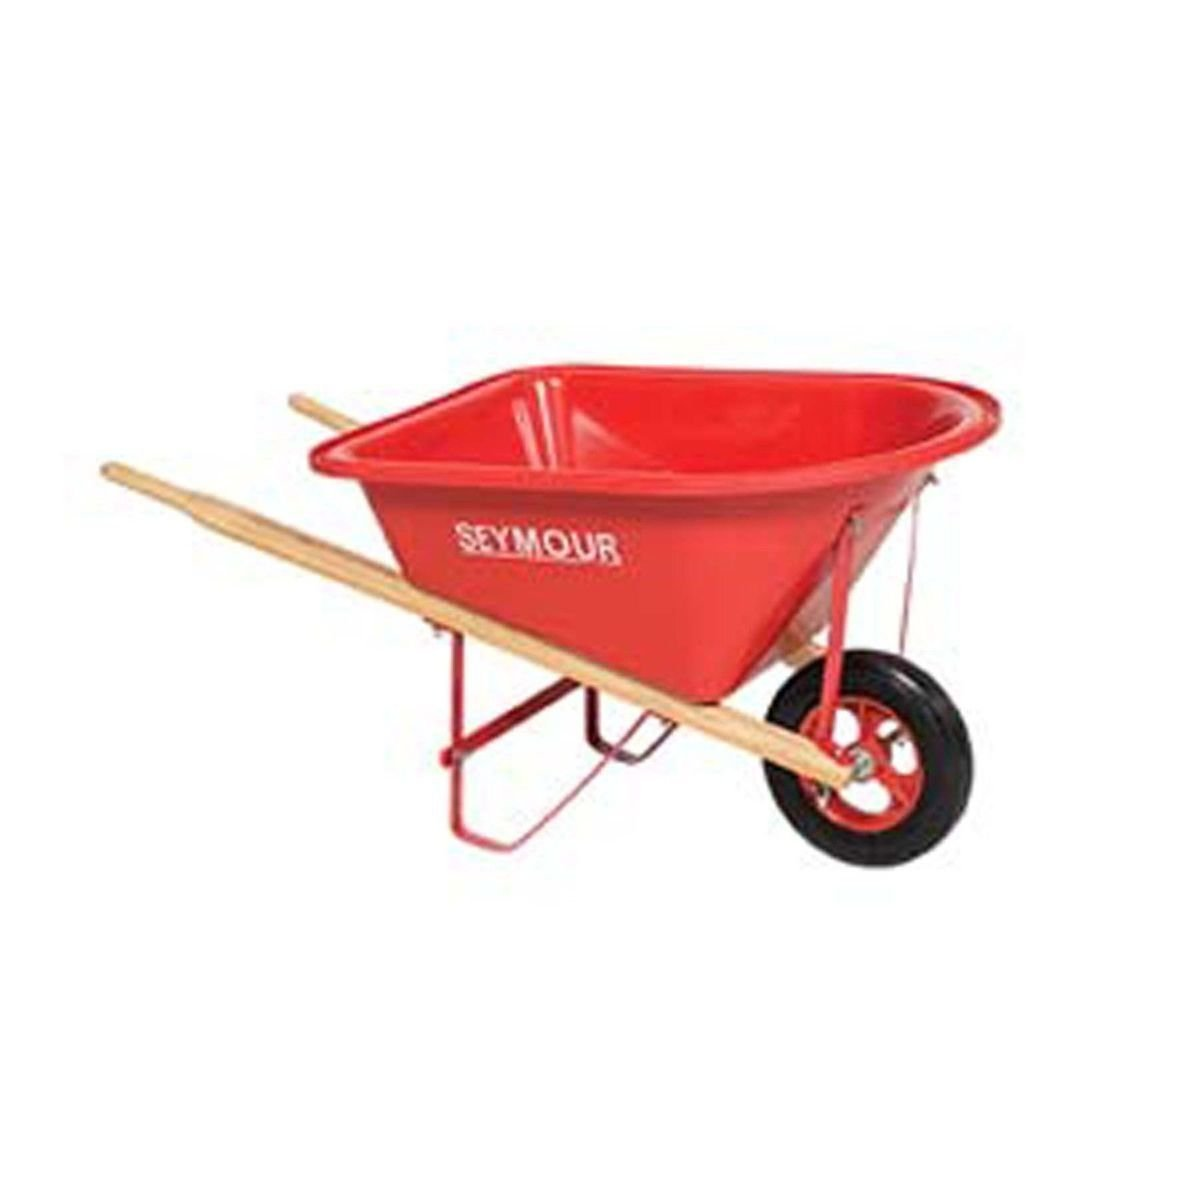 ALI VIRGO Collapsible Wagon, Folding Camping,Outdoor Garden Shopping Beach Heavy Duty Utility Cart with All-Terrain Wheels, Simple Red